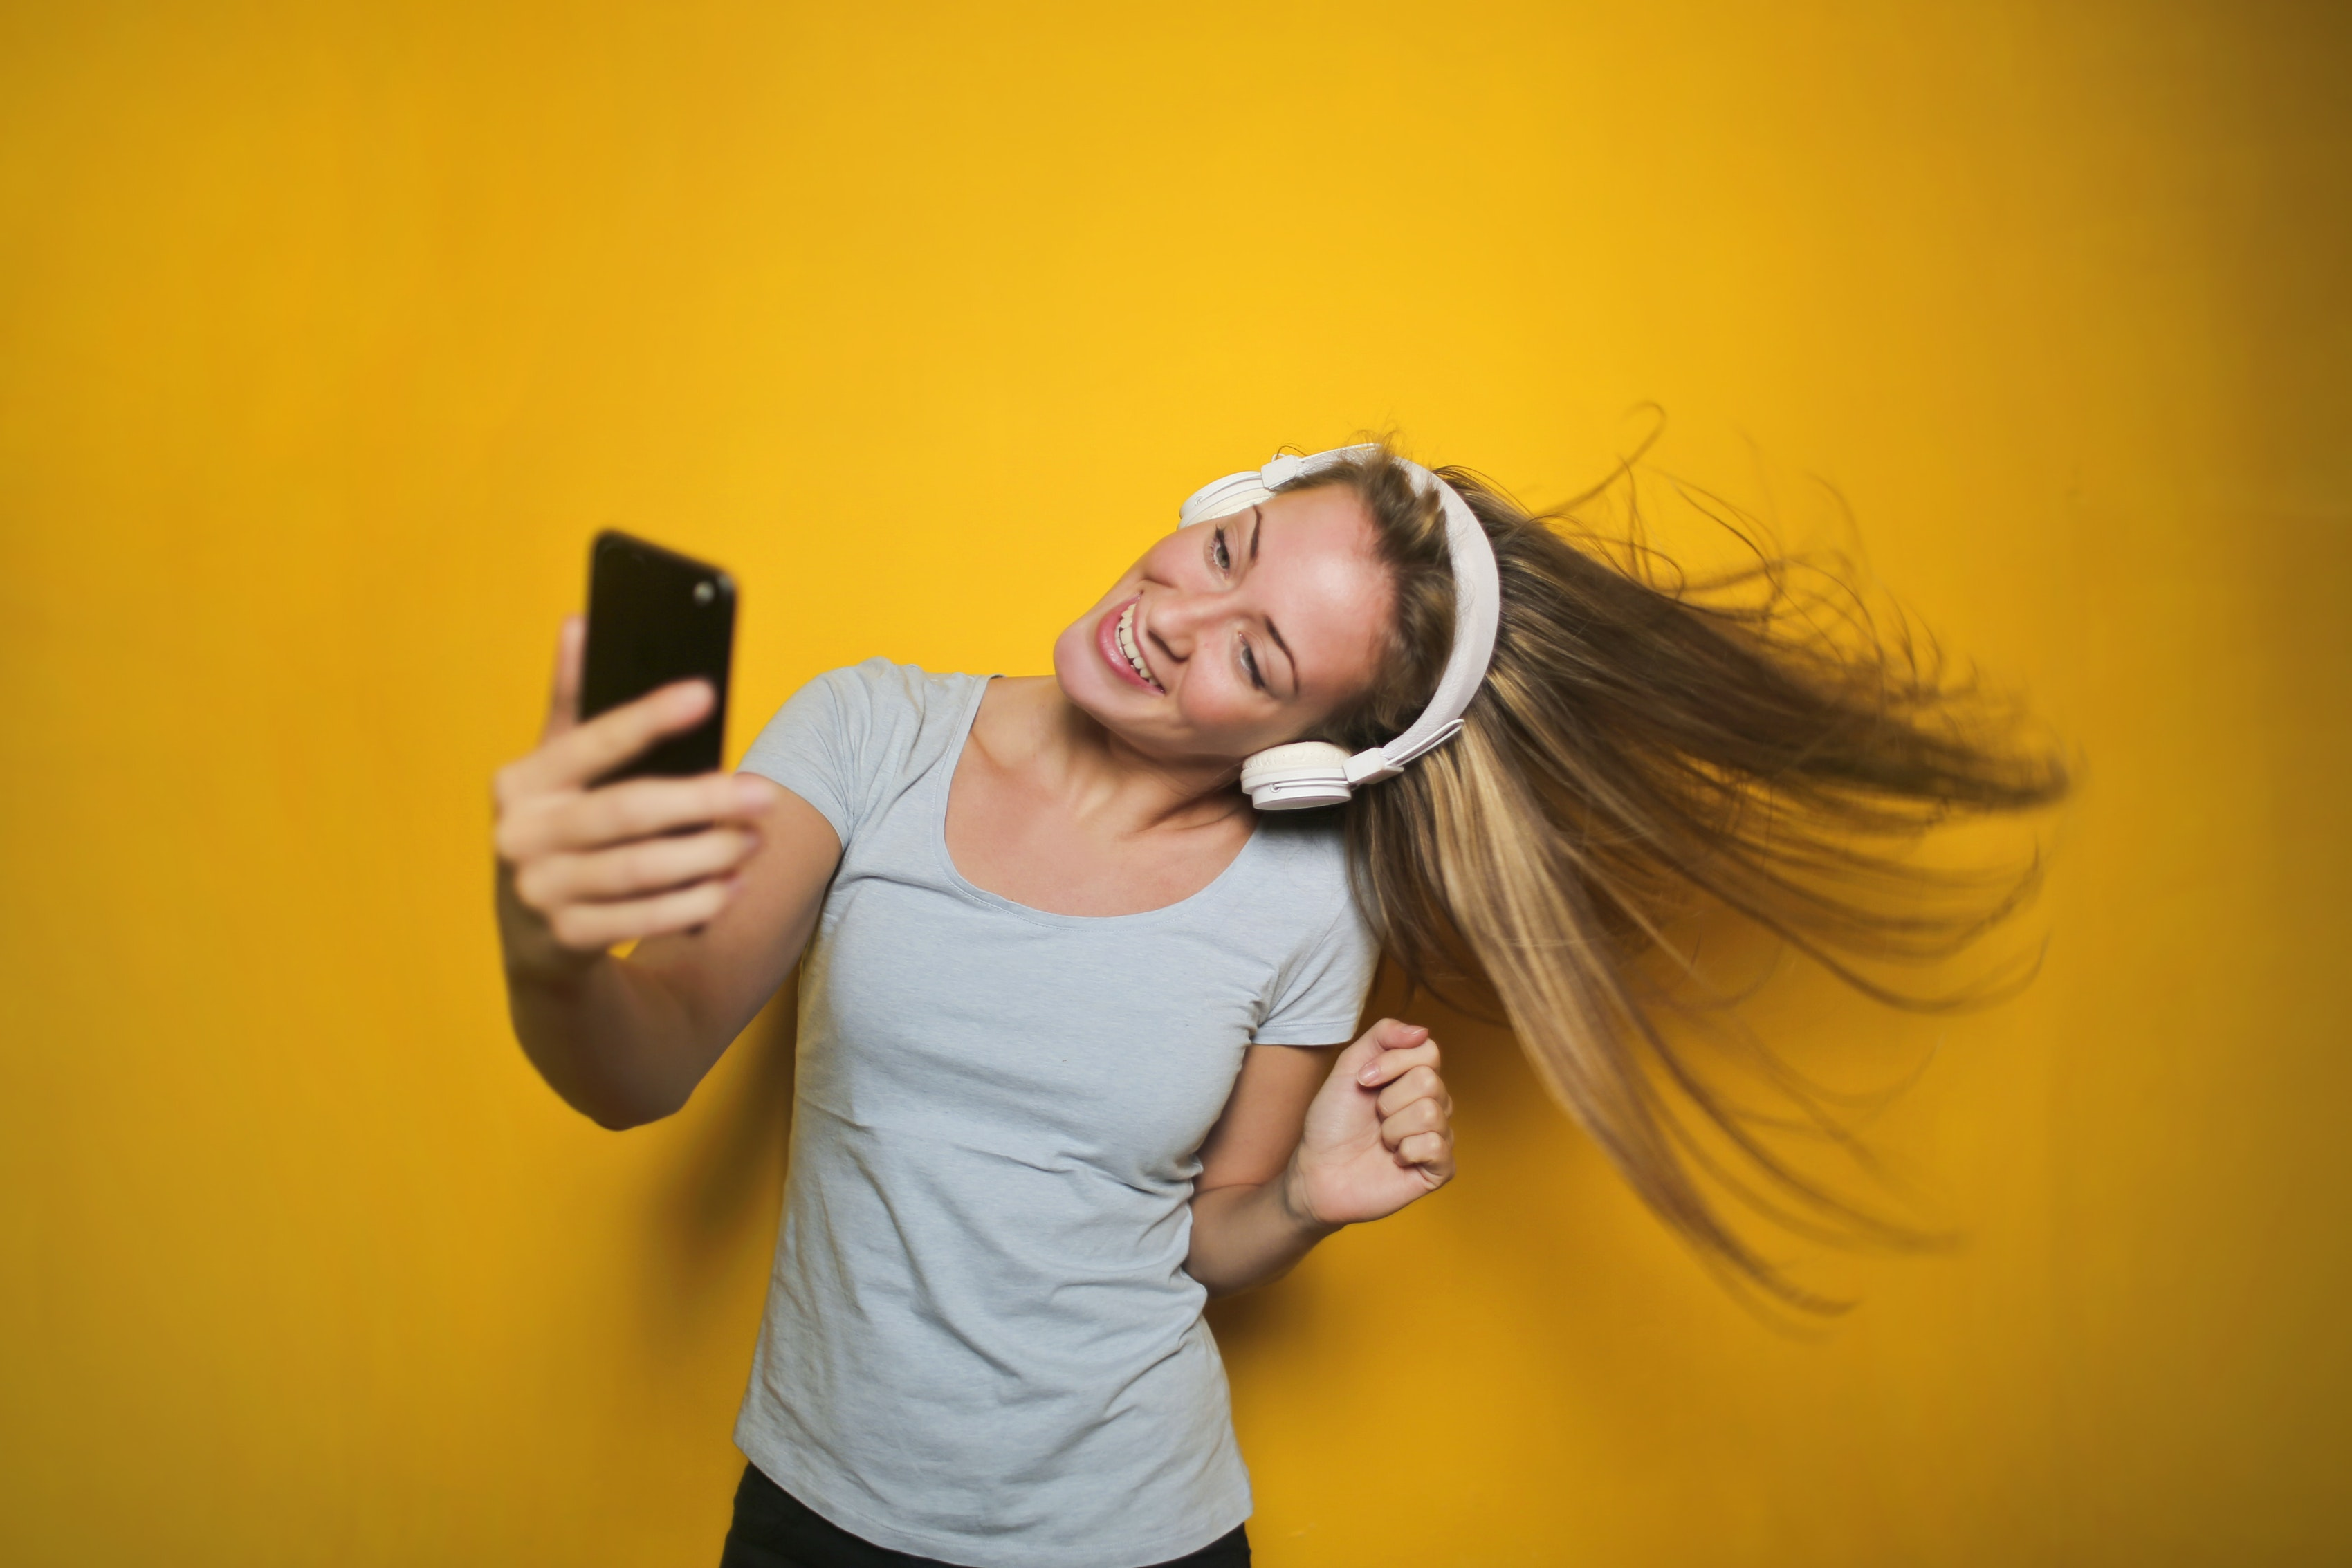 Photography of a woman listening to music